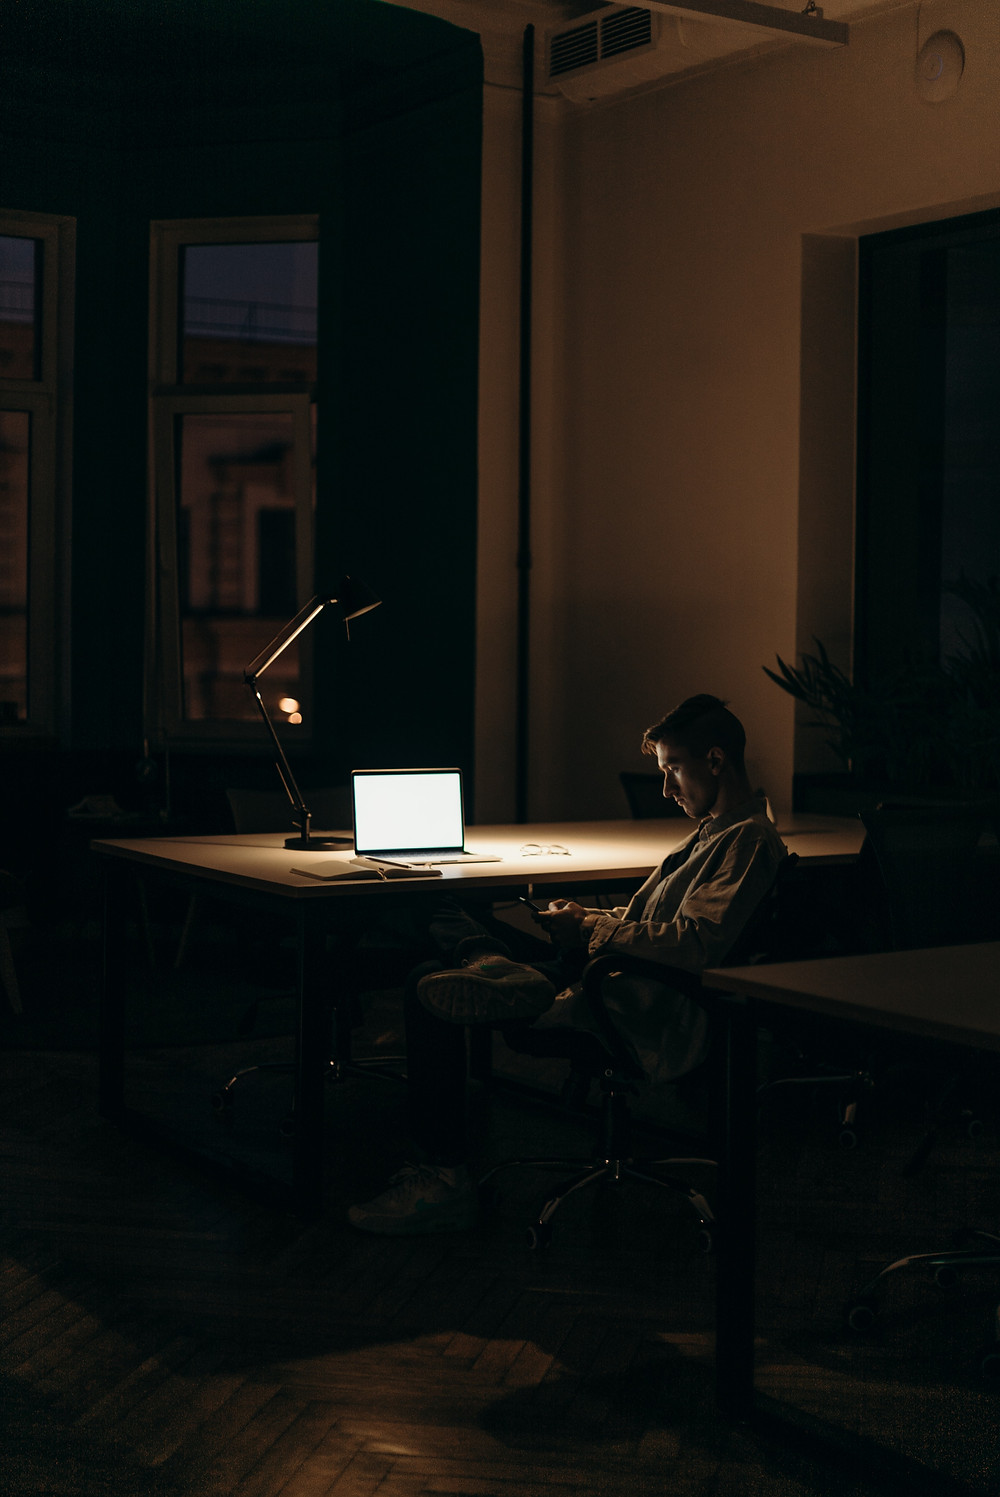 a man sits in a dark room infant of a bright laptop screen